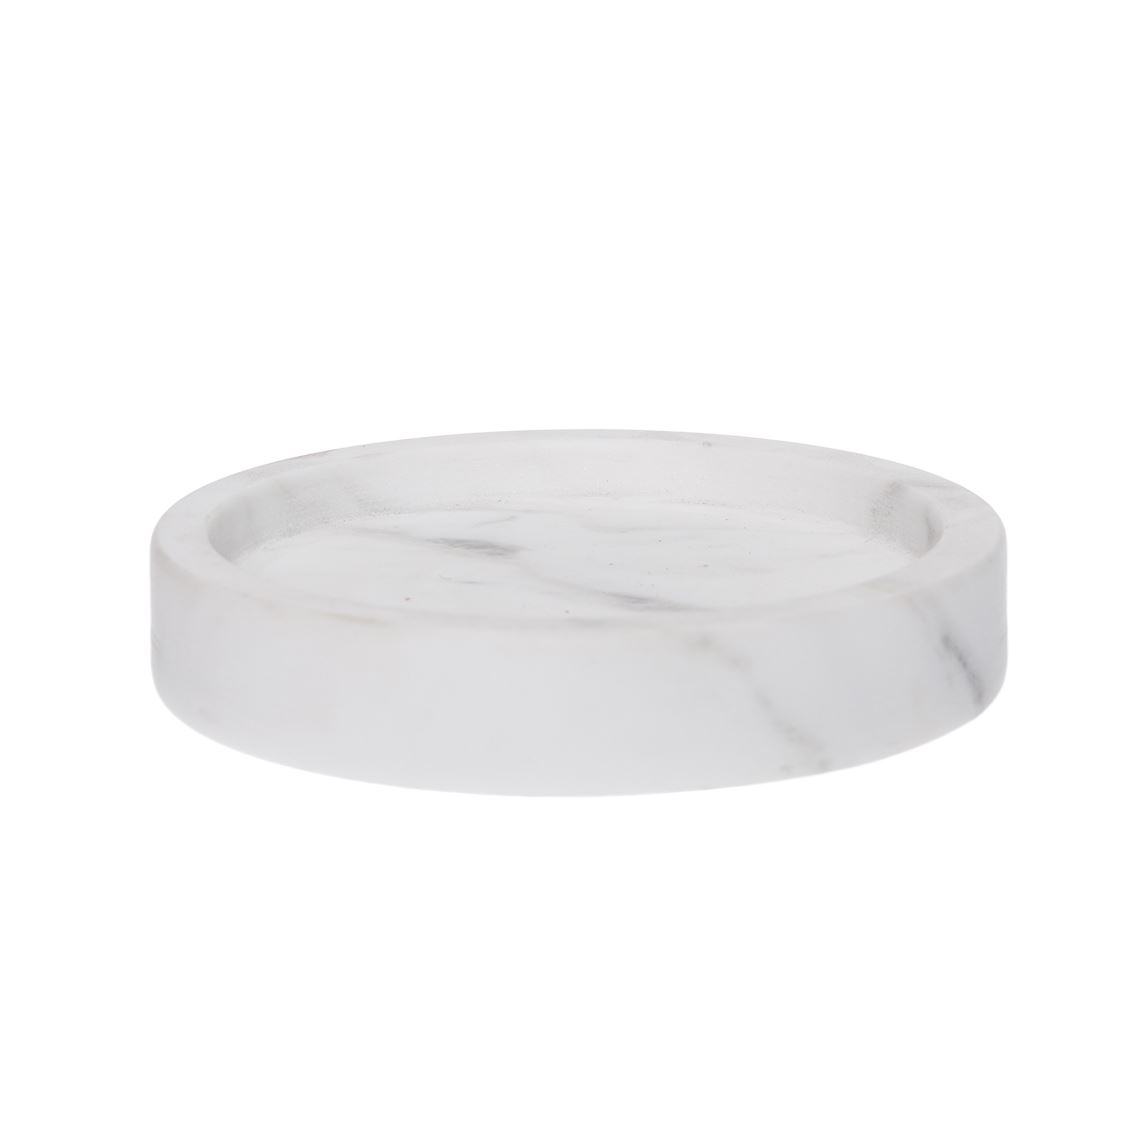 Marble Candle Plate Size W 12cm x D 12cm x H 2cm Polished Marble Freedom by Freedom, a Plants for sale on Style Sourcebook